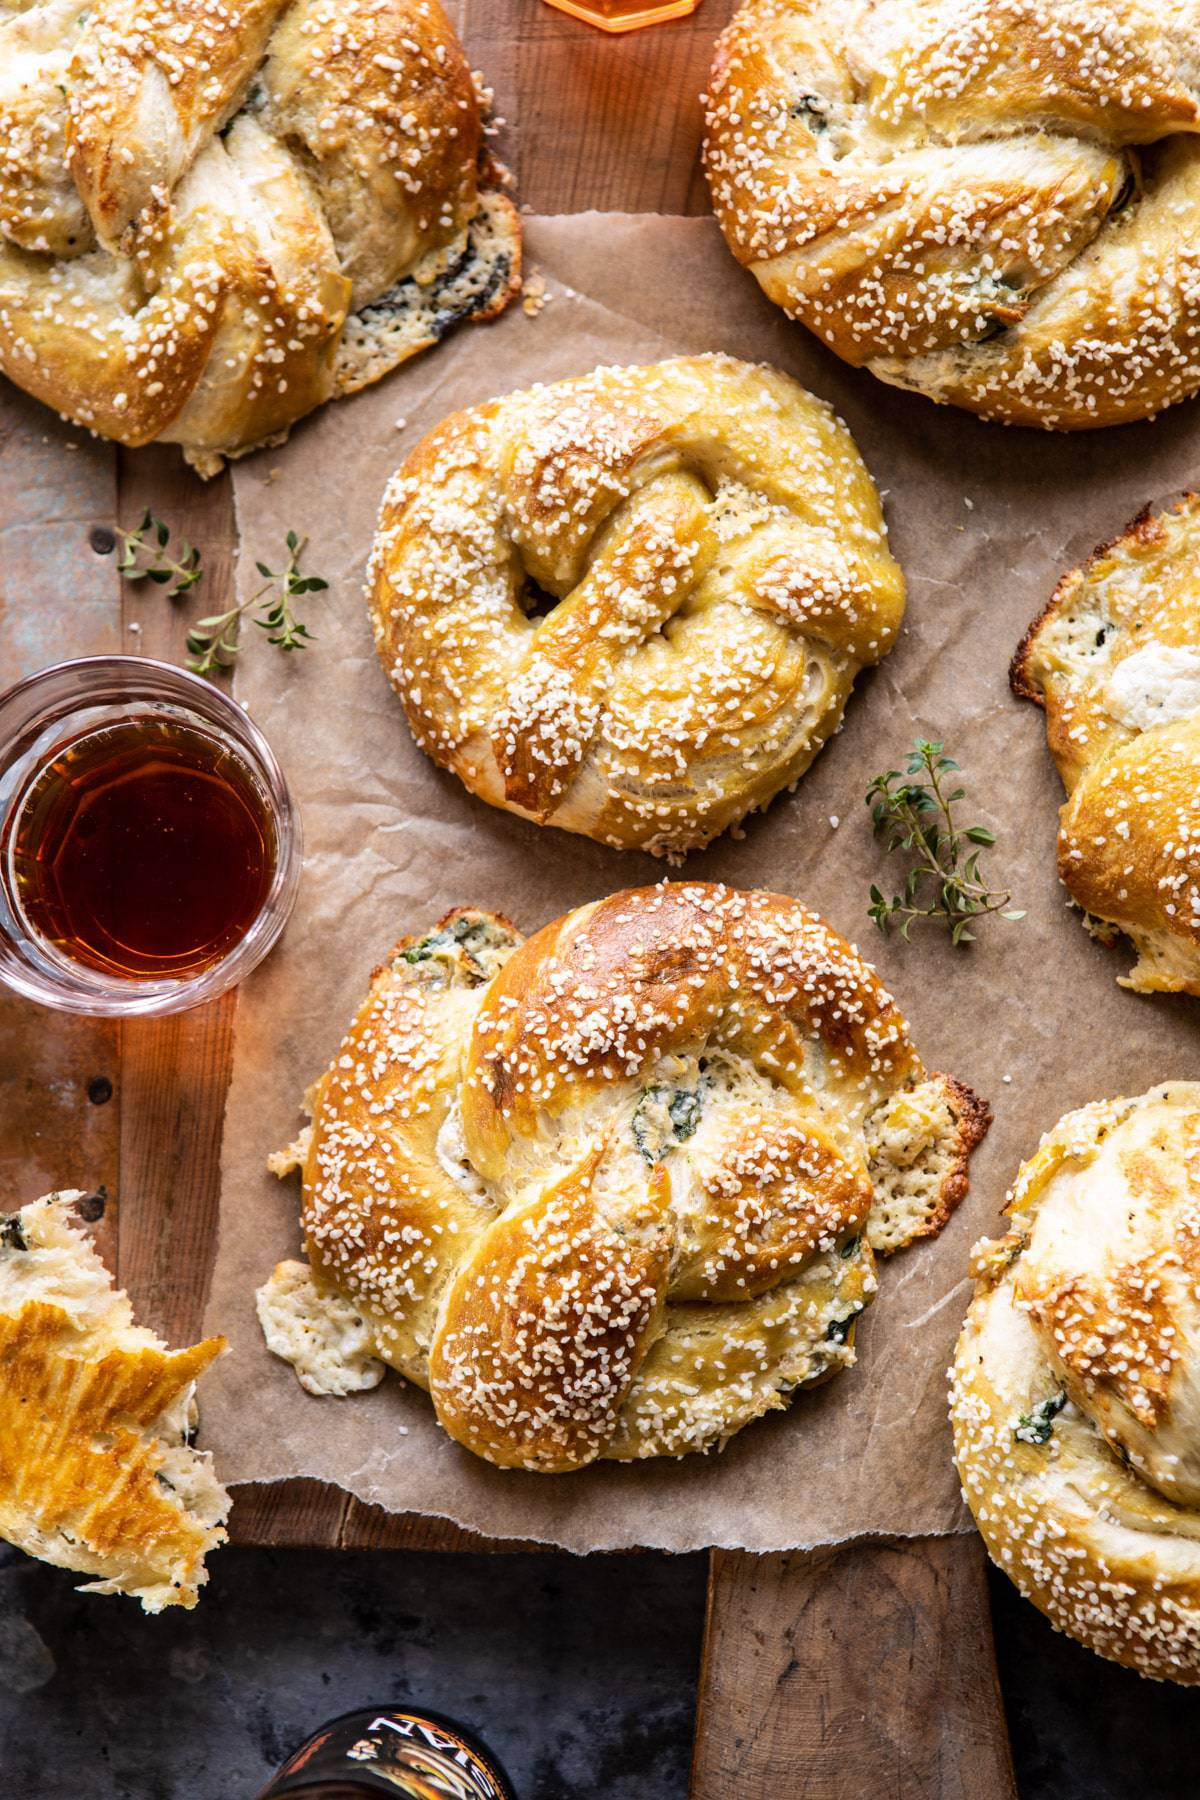 Spinach and Artichoke Stuffed Soft Pretzels